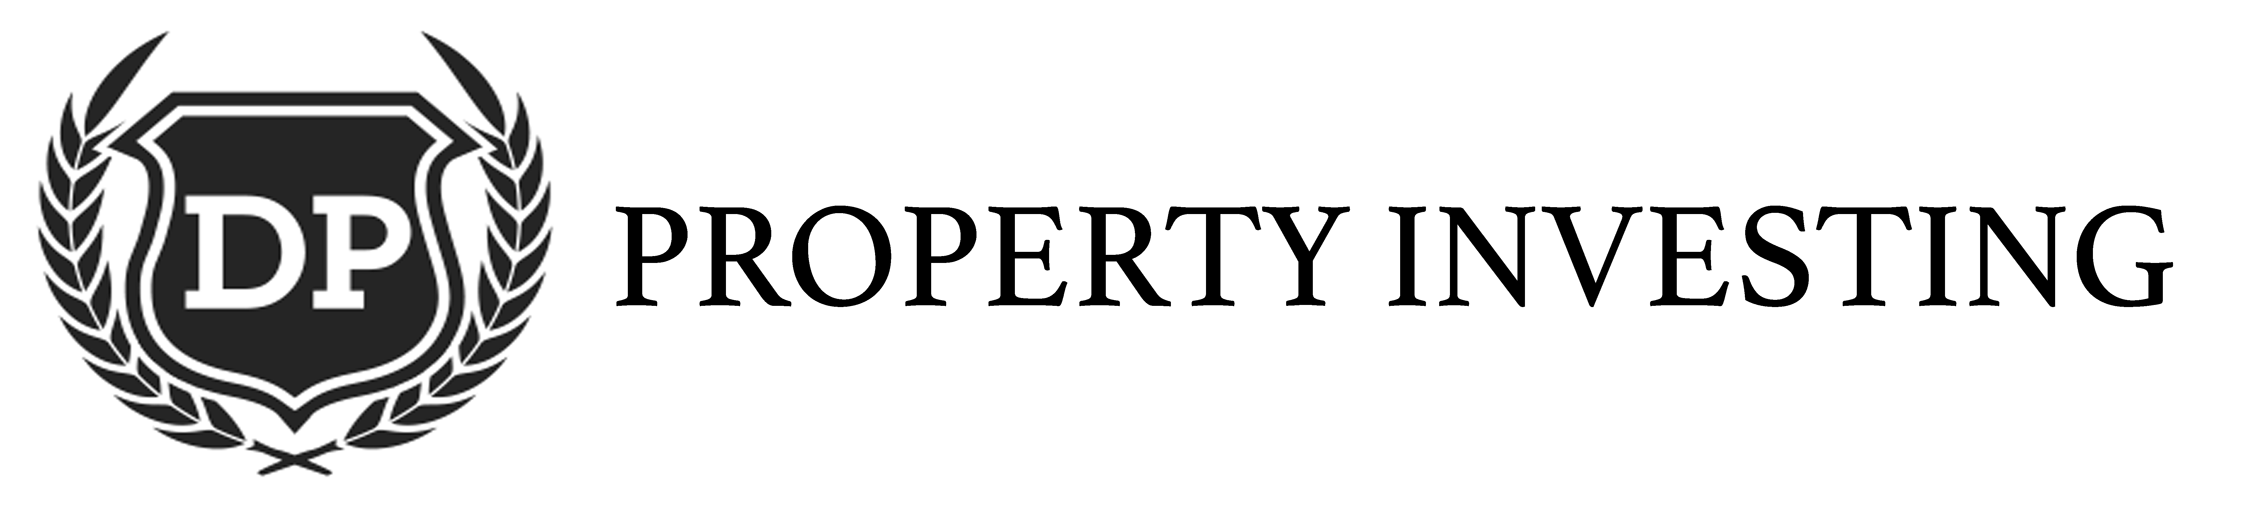 David Pickup Property Investing